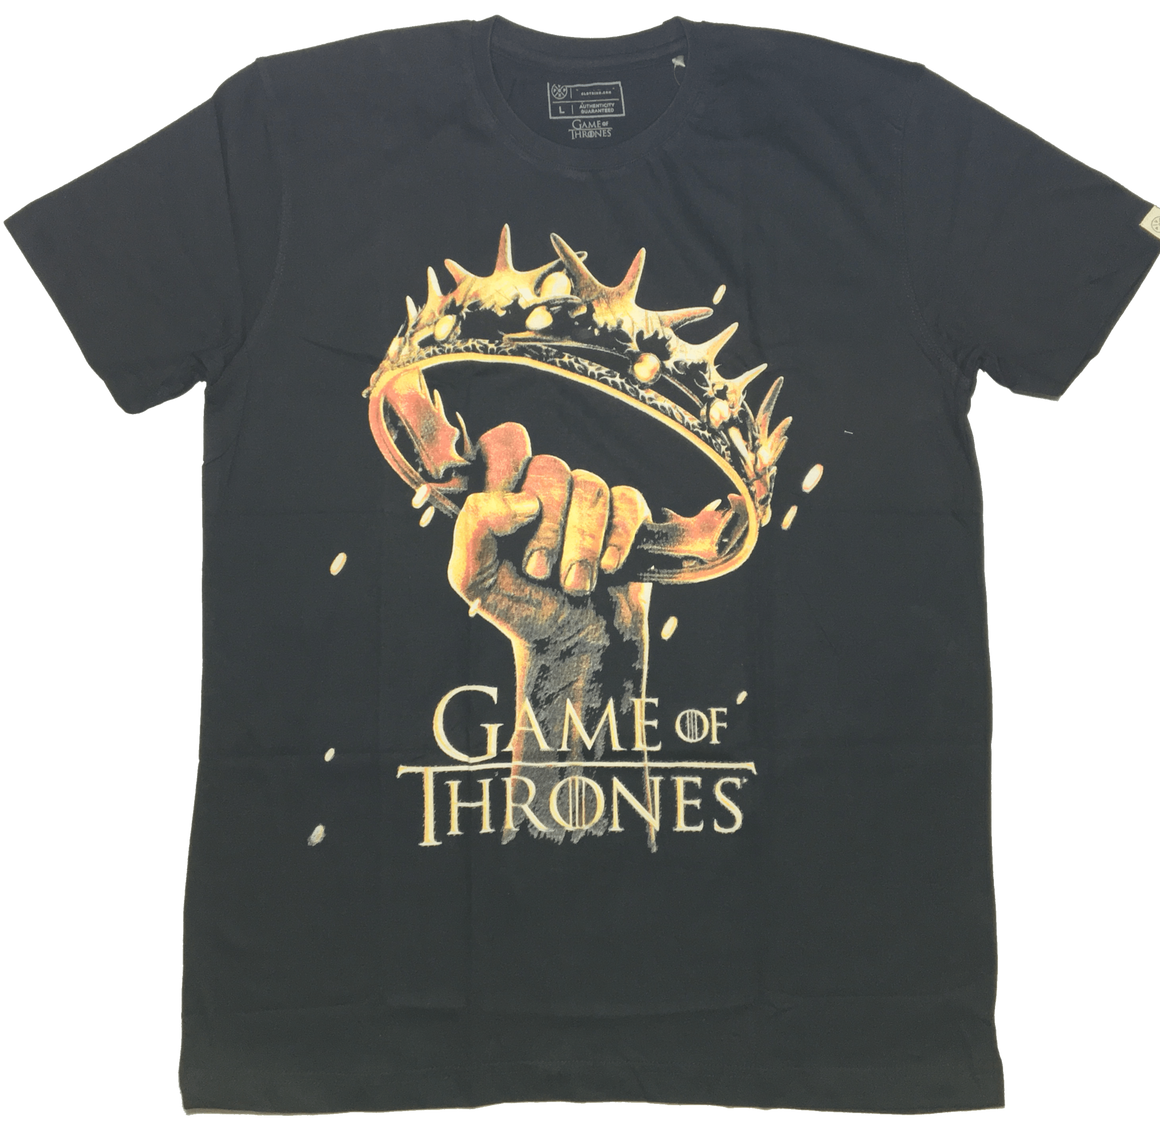 Game of Thrones Black T-Shirt by Vox Pop-Vox Pop Clothing- www.superherotoystore.com-T-Shirt